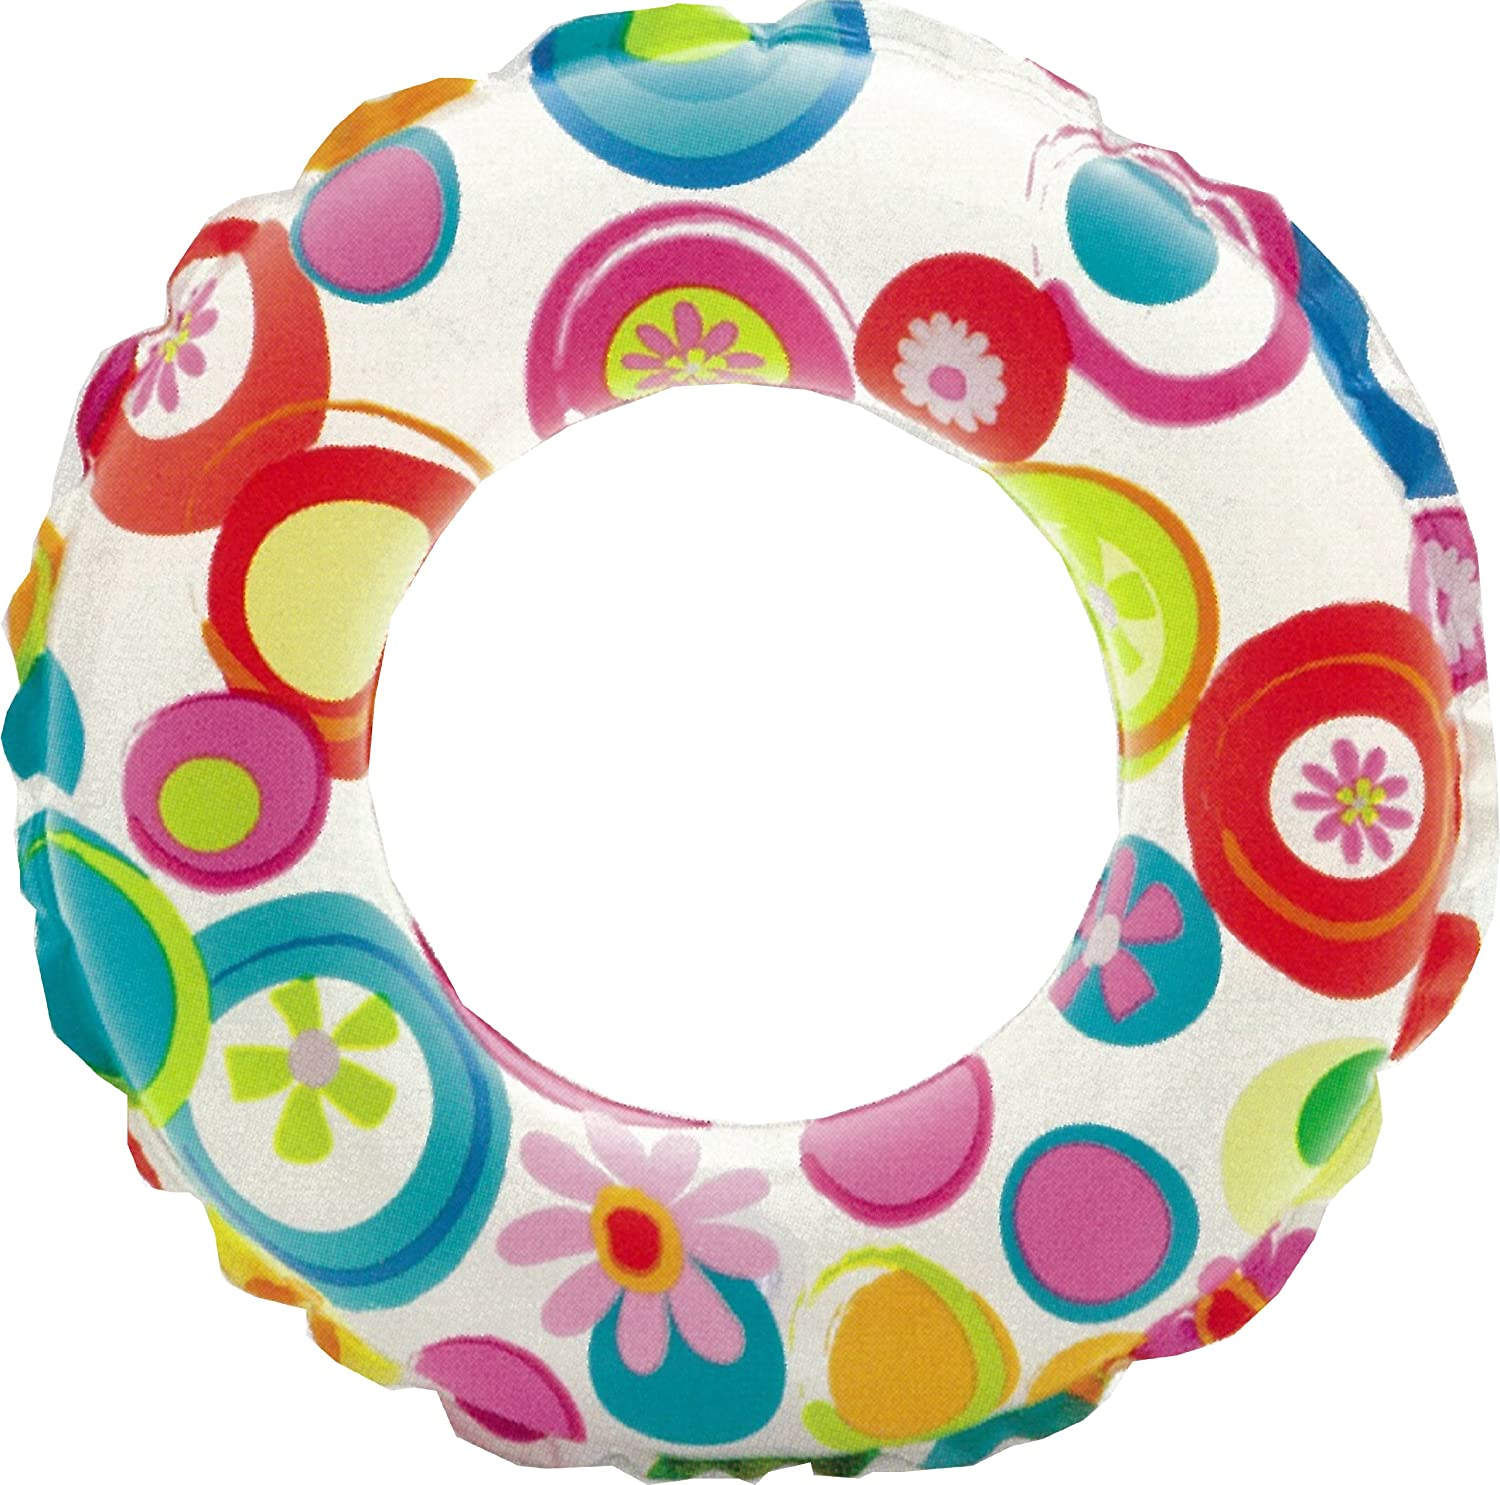 by lbts review beach life device lauderdale the flotation sea rings safety ring